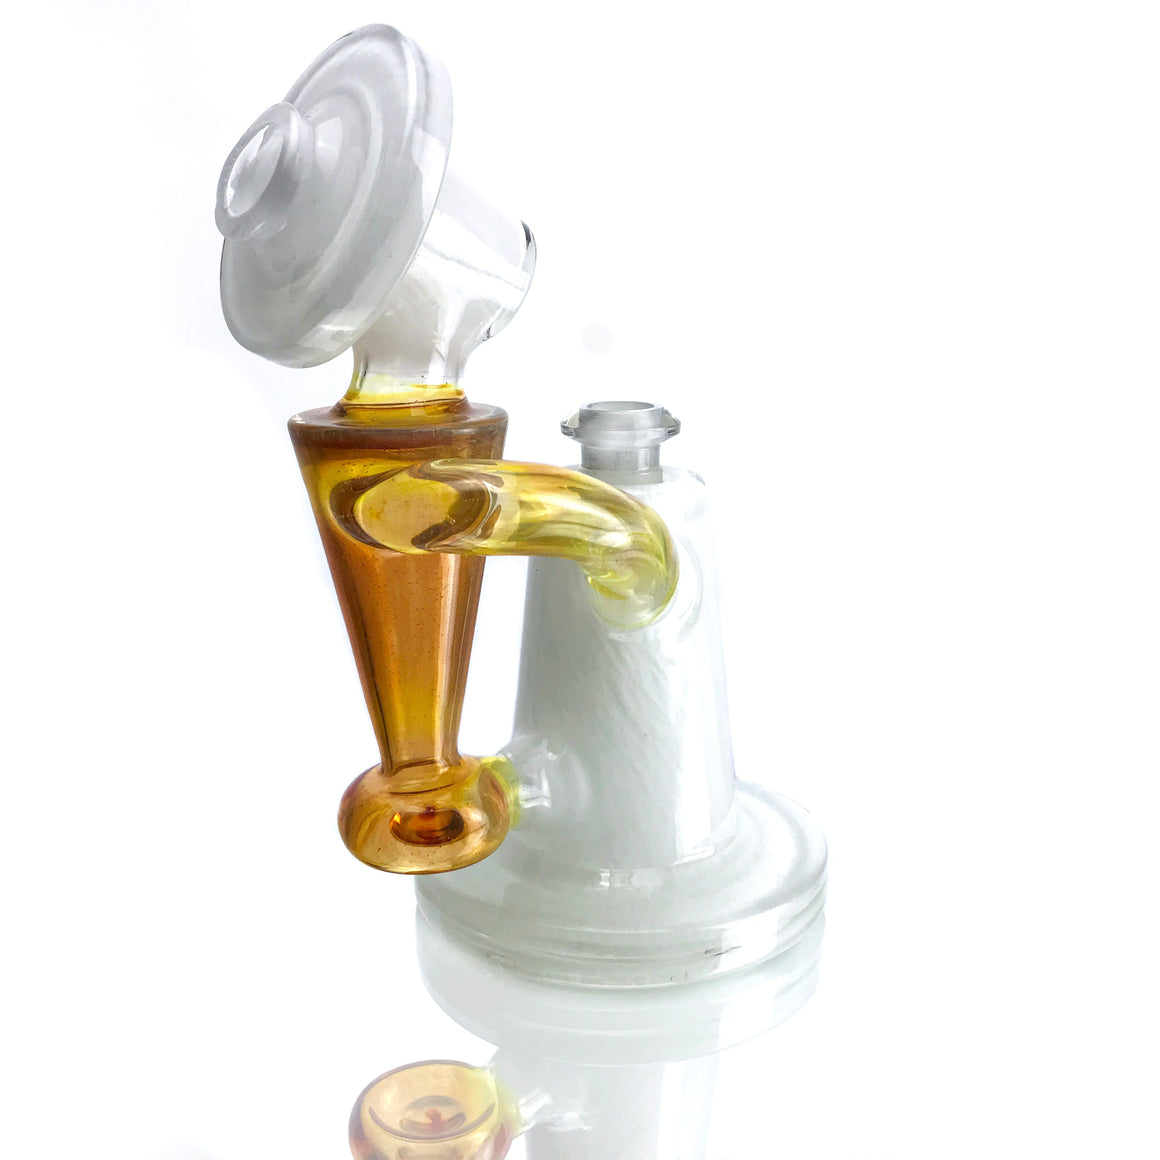 Fully-worked Recycler - Frit White/NS Yellow - 14mm Female